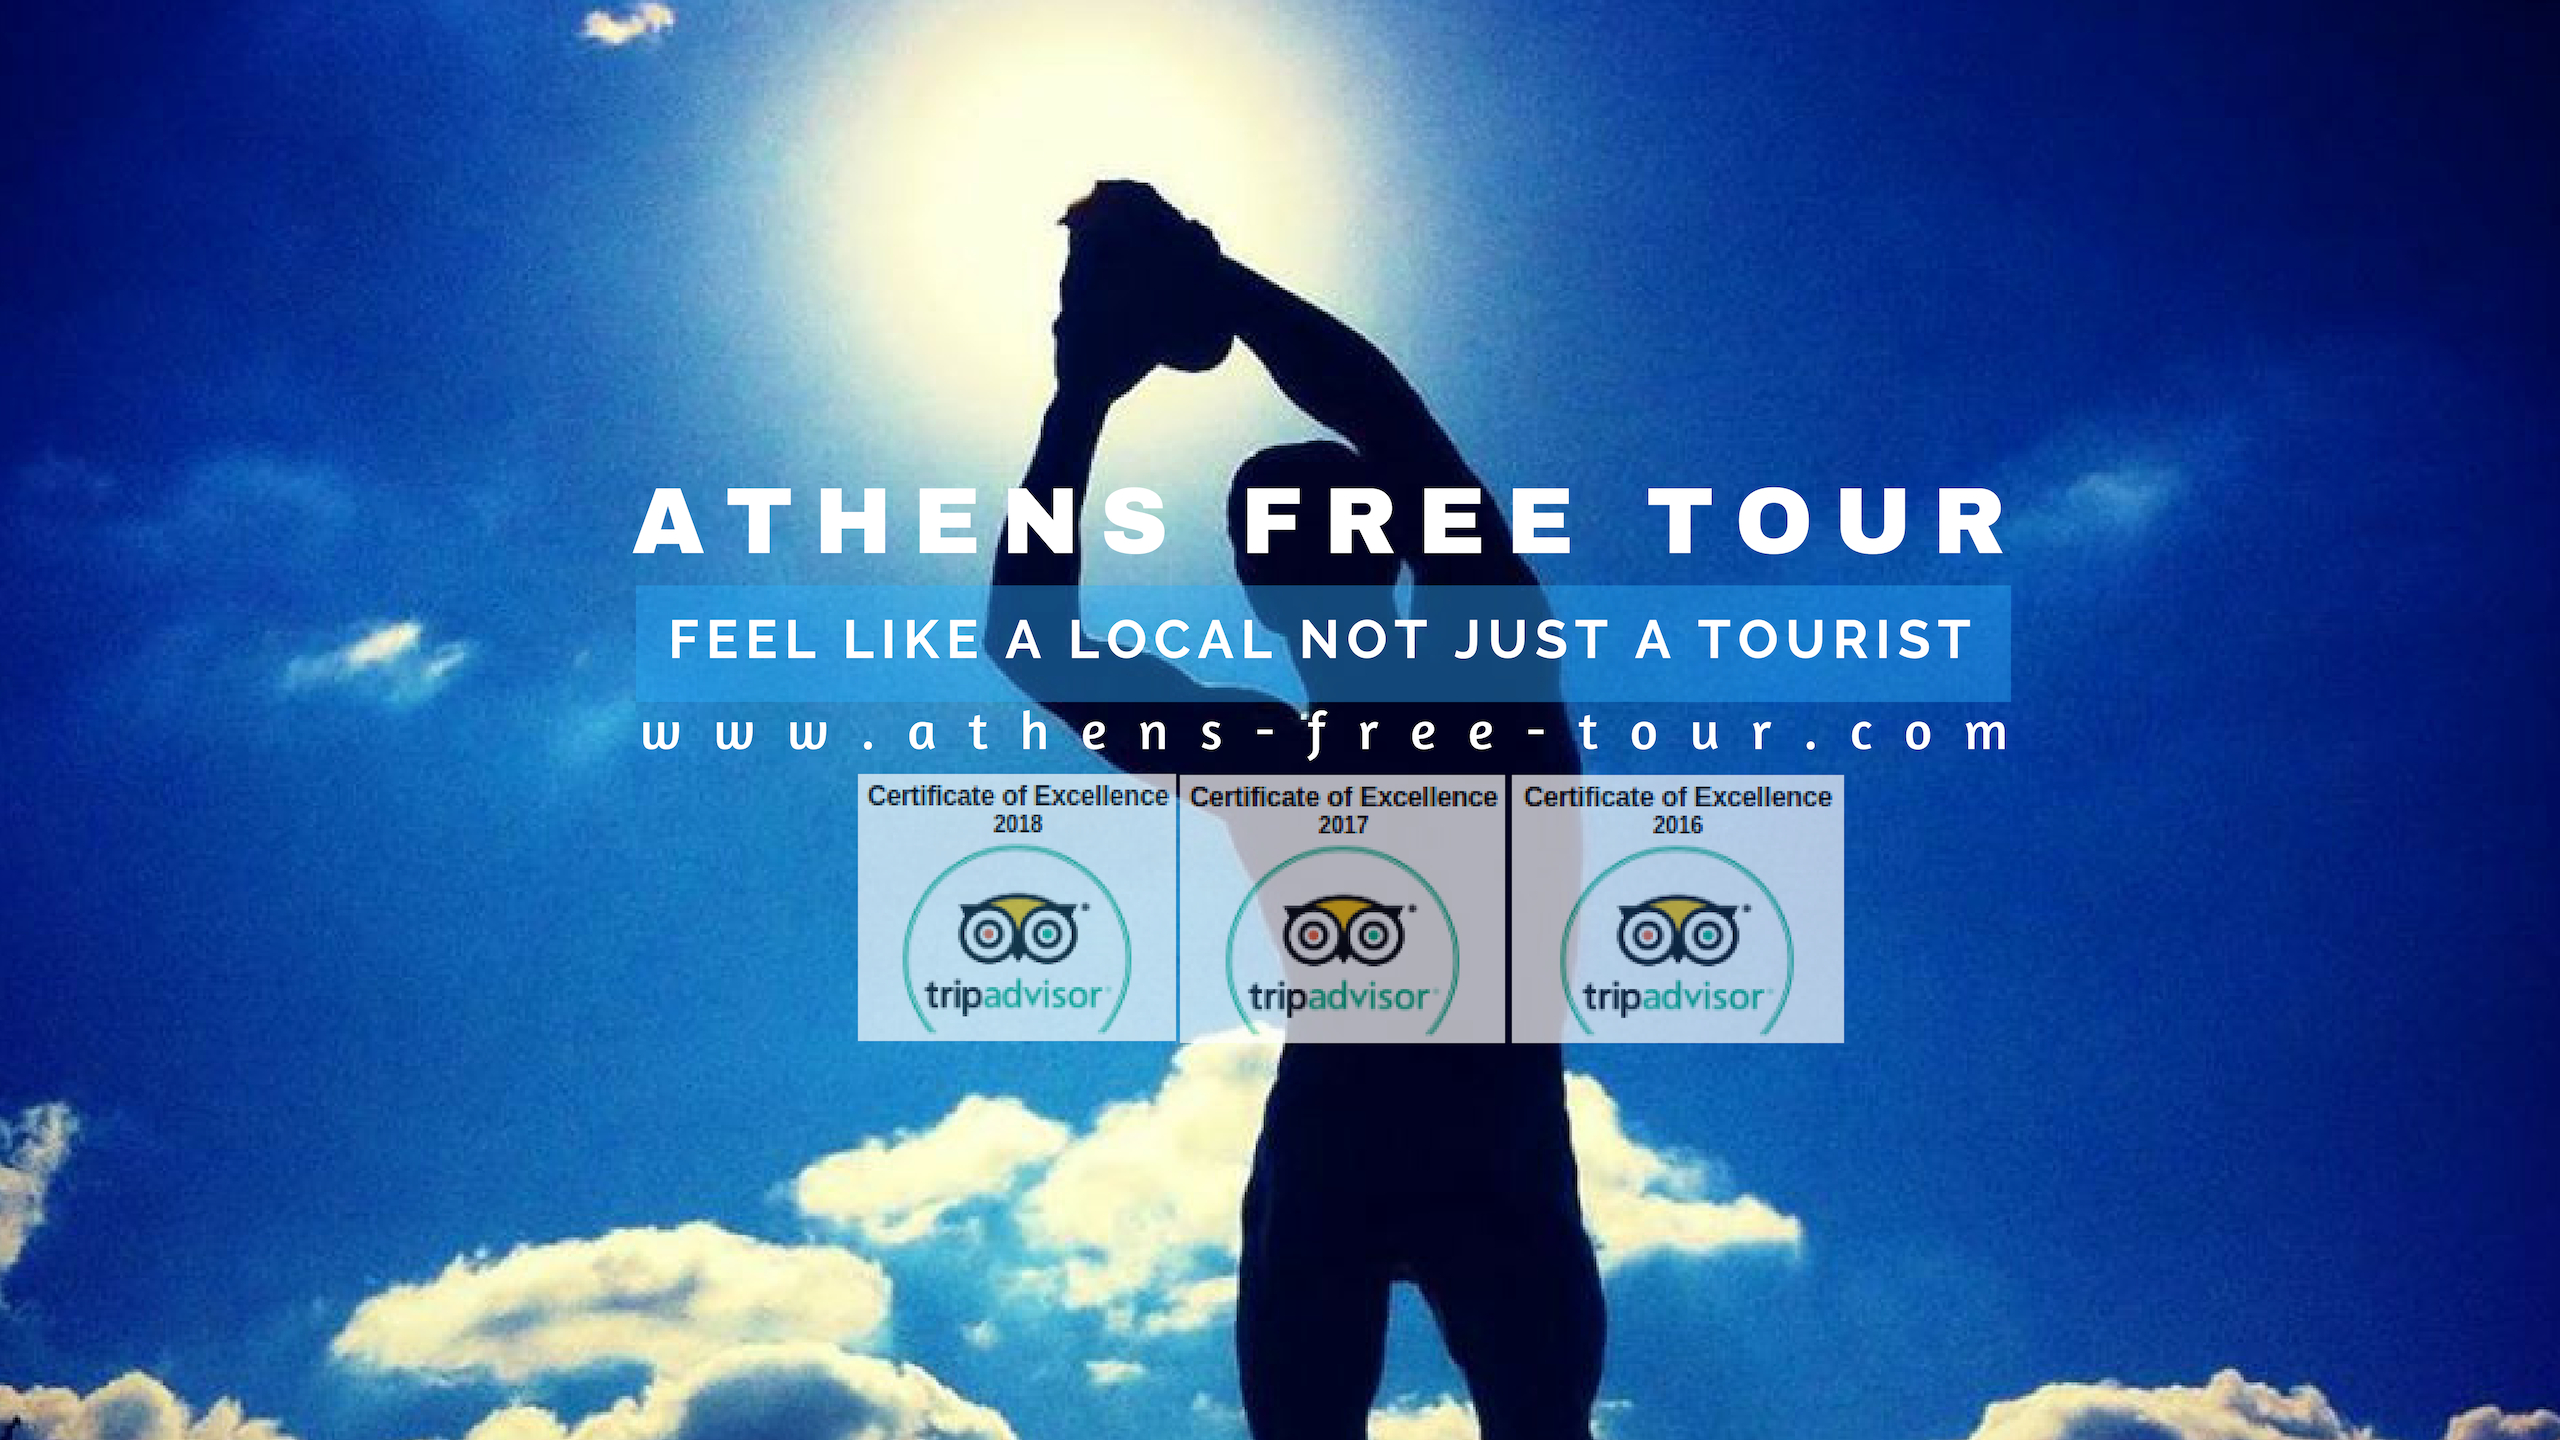 athens-free-tour-english